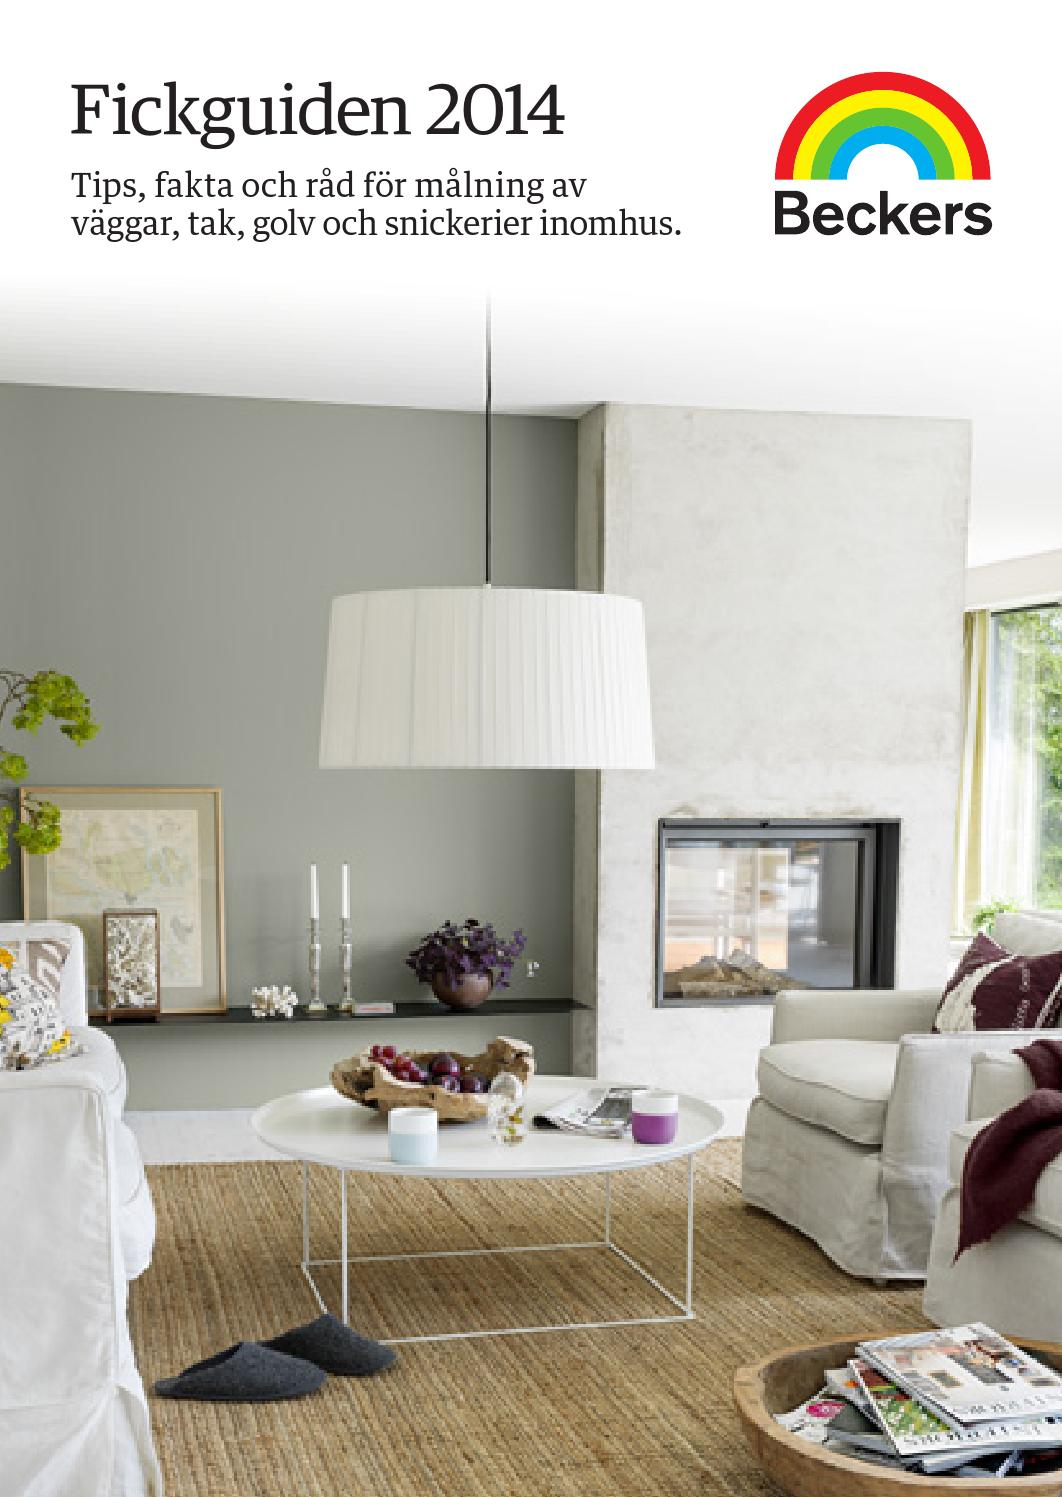 Beck0326 b&s fickguide inomhus sv lowres by klirr stockholm   issuu